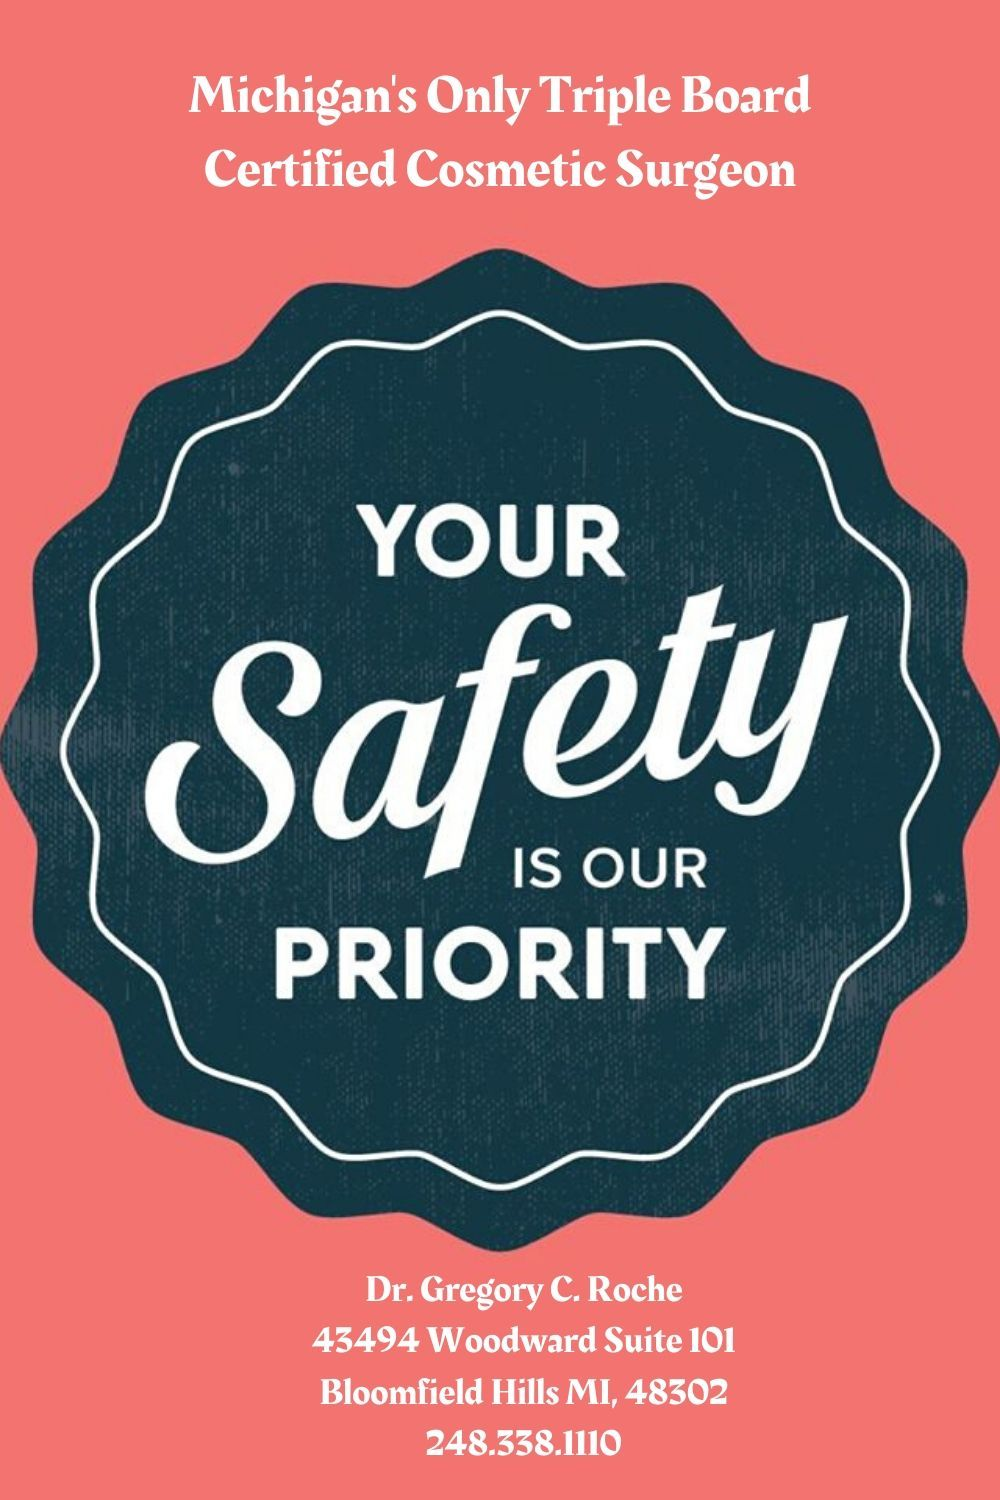 Our 1 priority is the health and safety of our patients